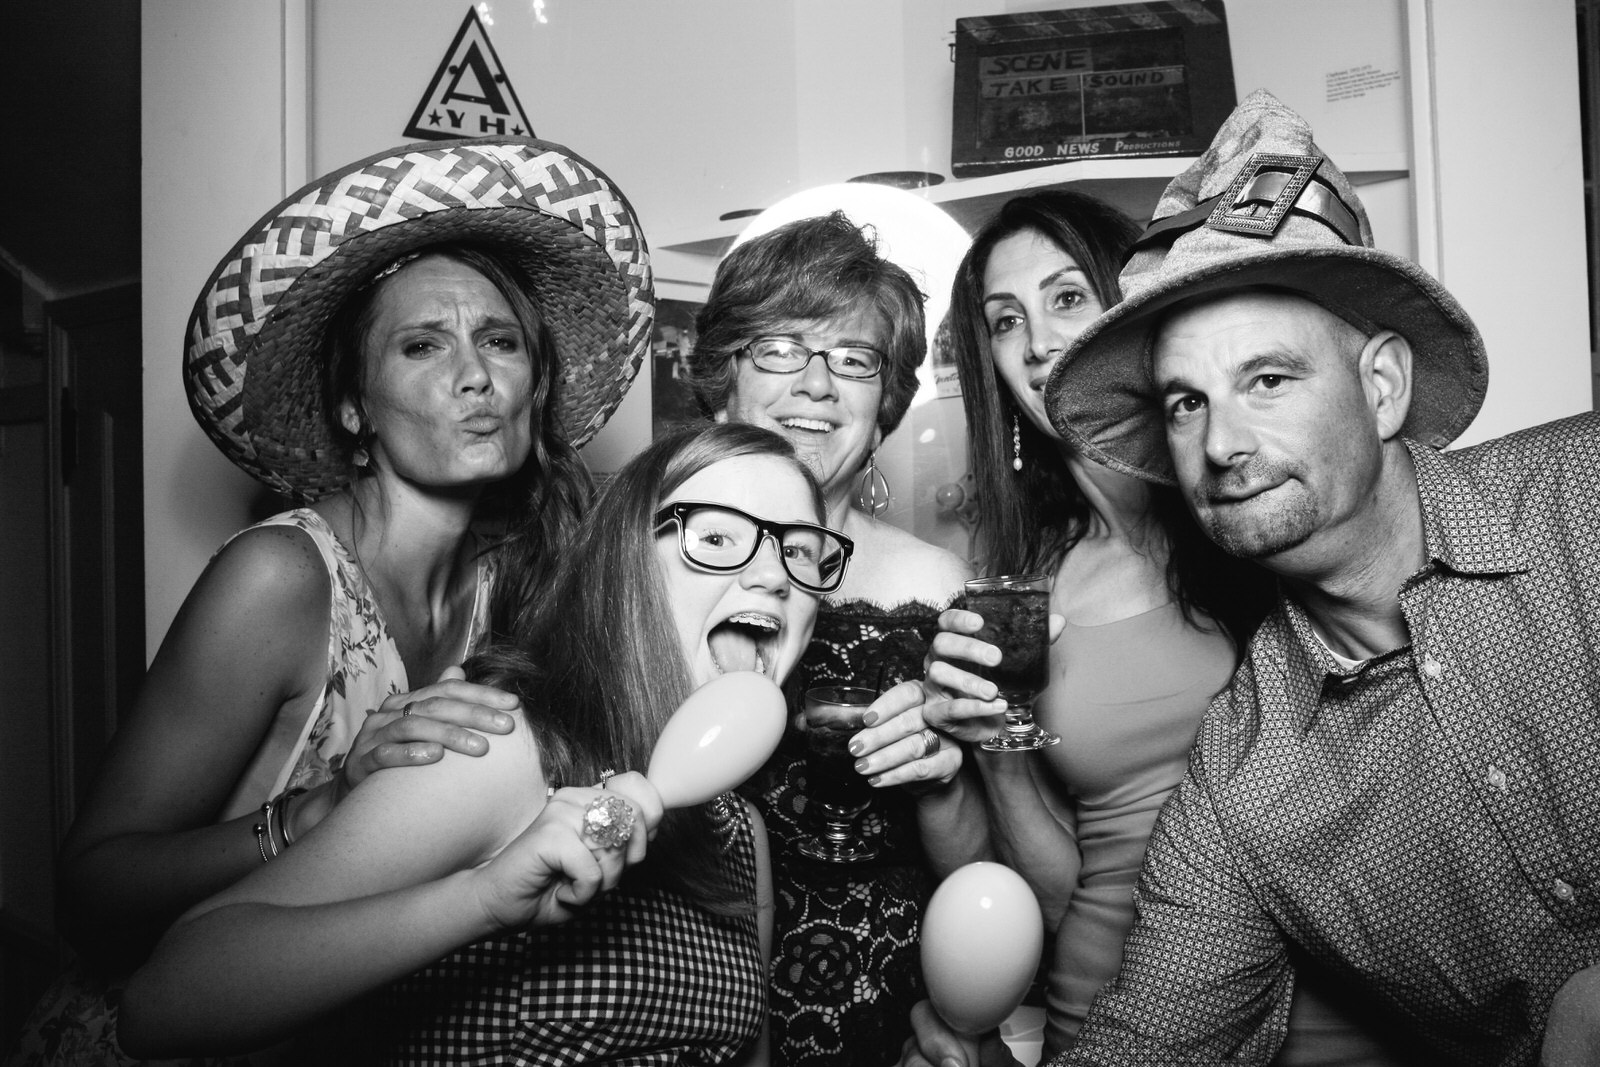 Richard-Donna-Wedding-Photo-Booth-20.jpg